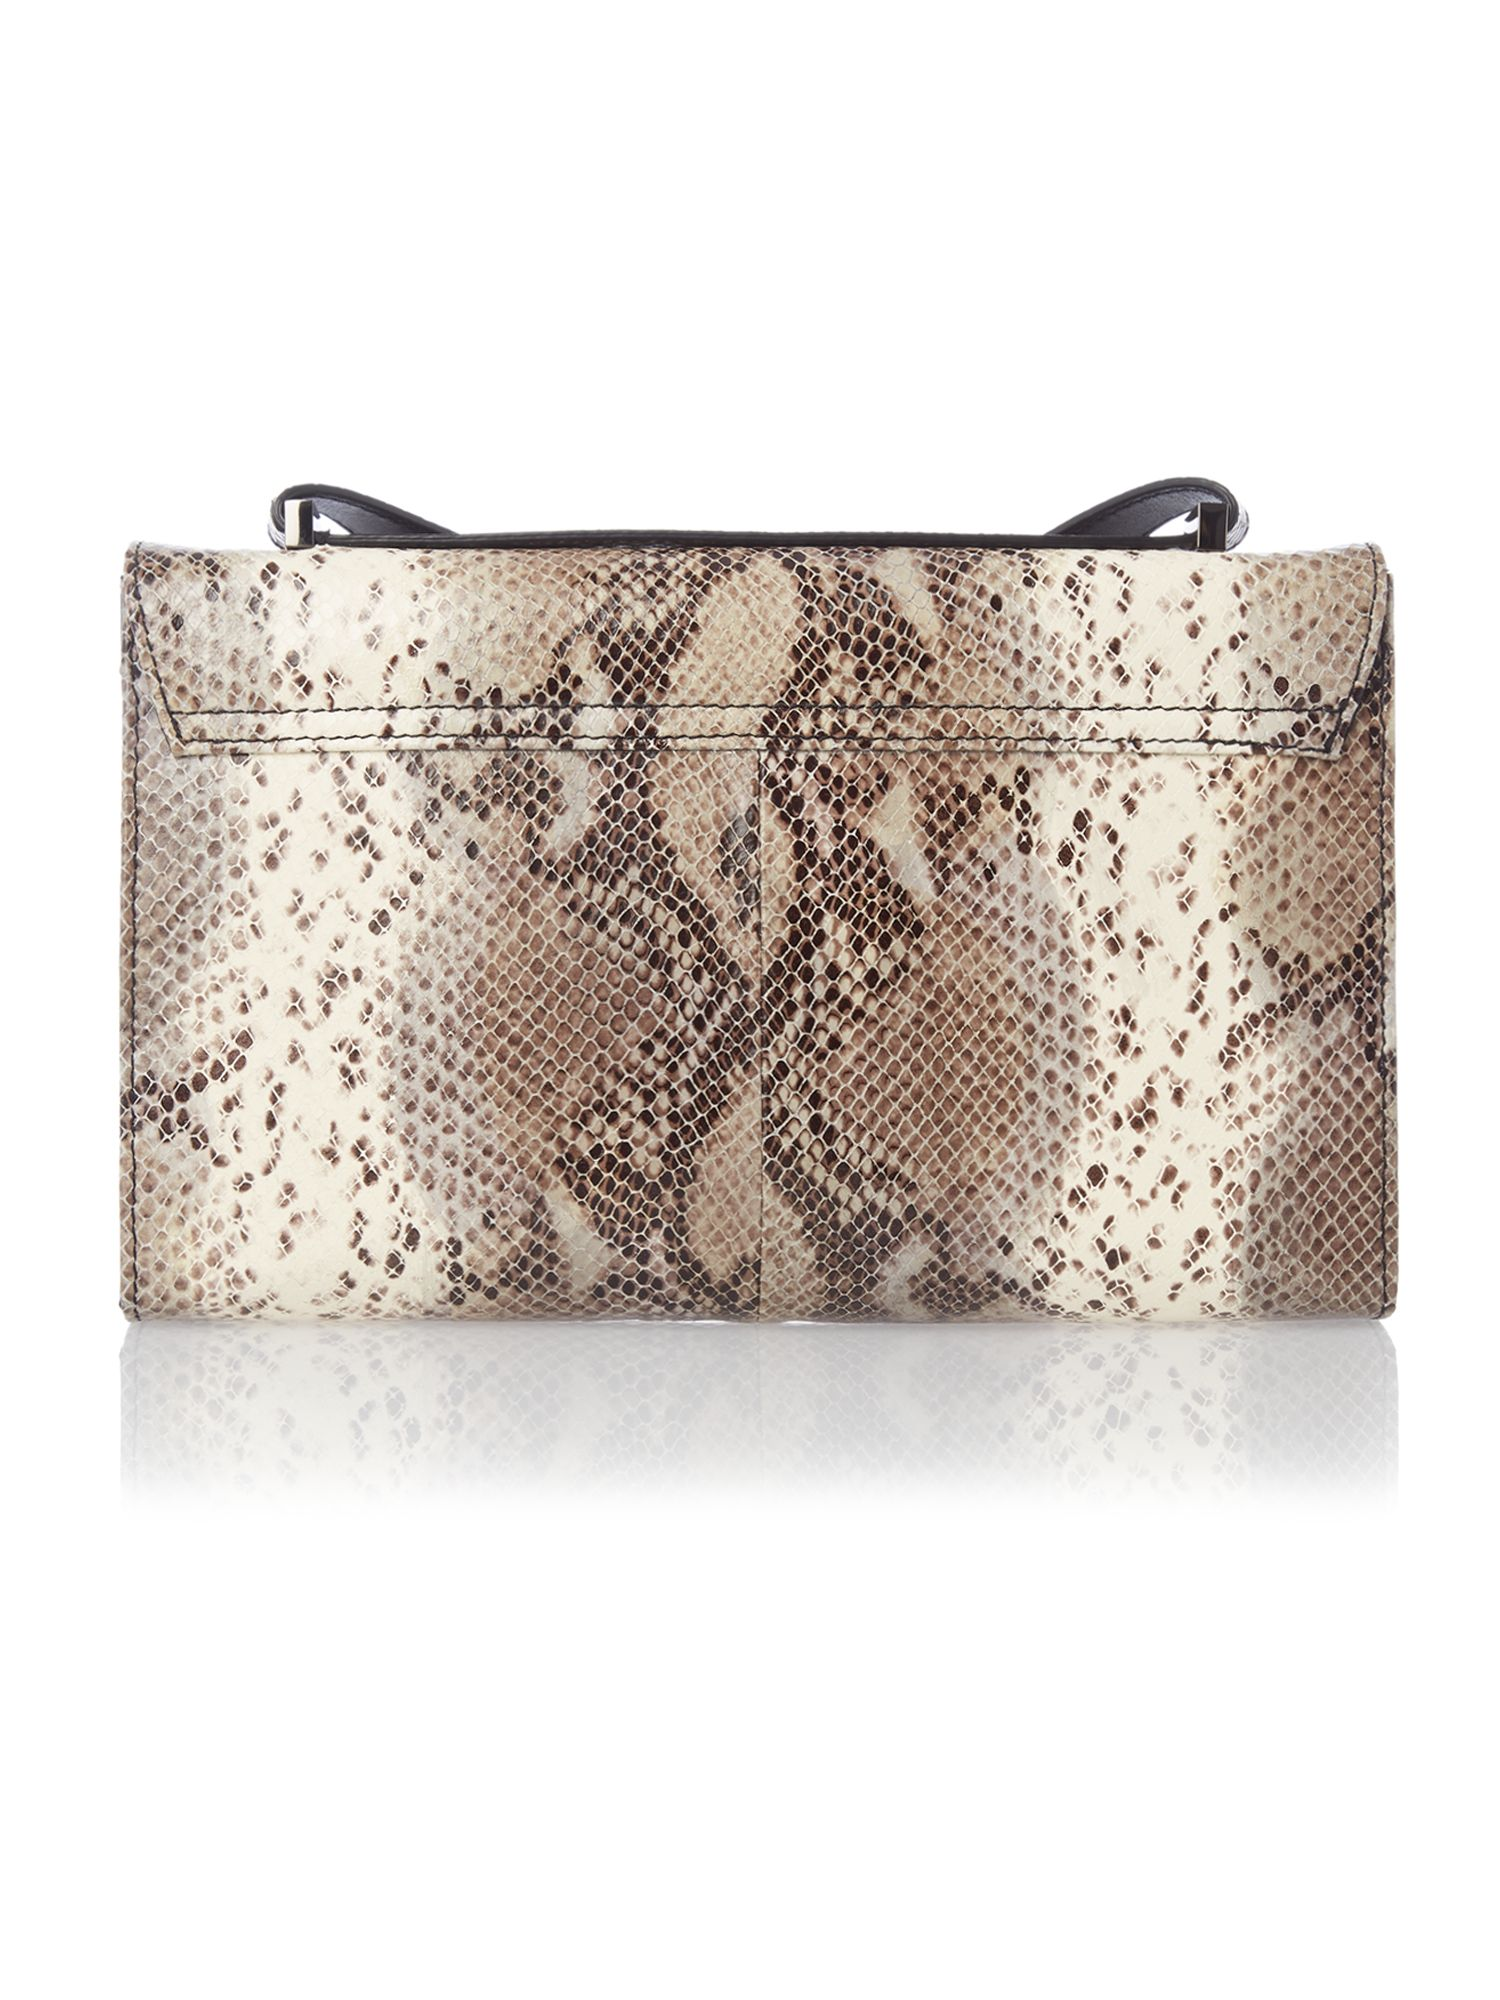 Medoum black snakeskin cross body bag